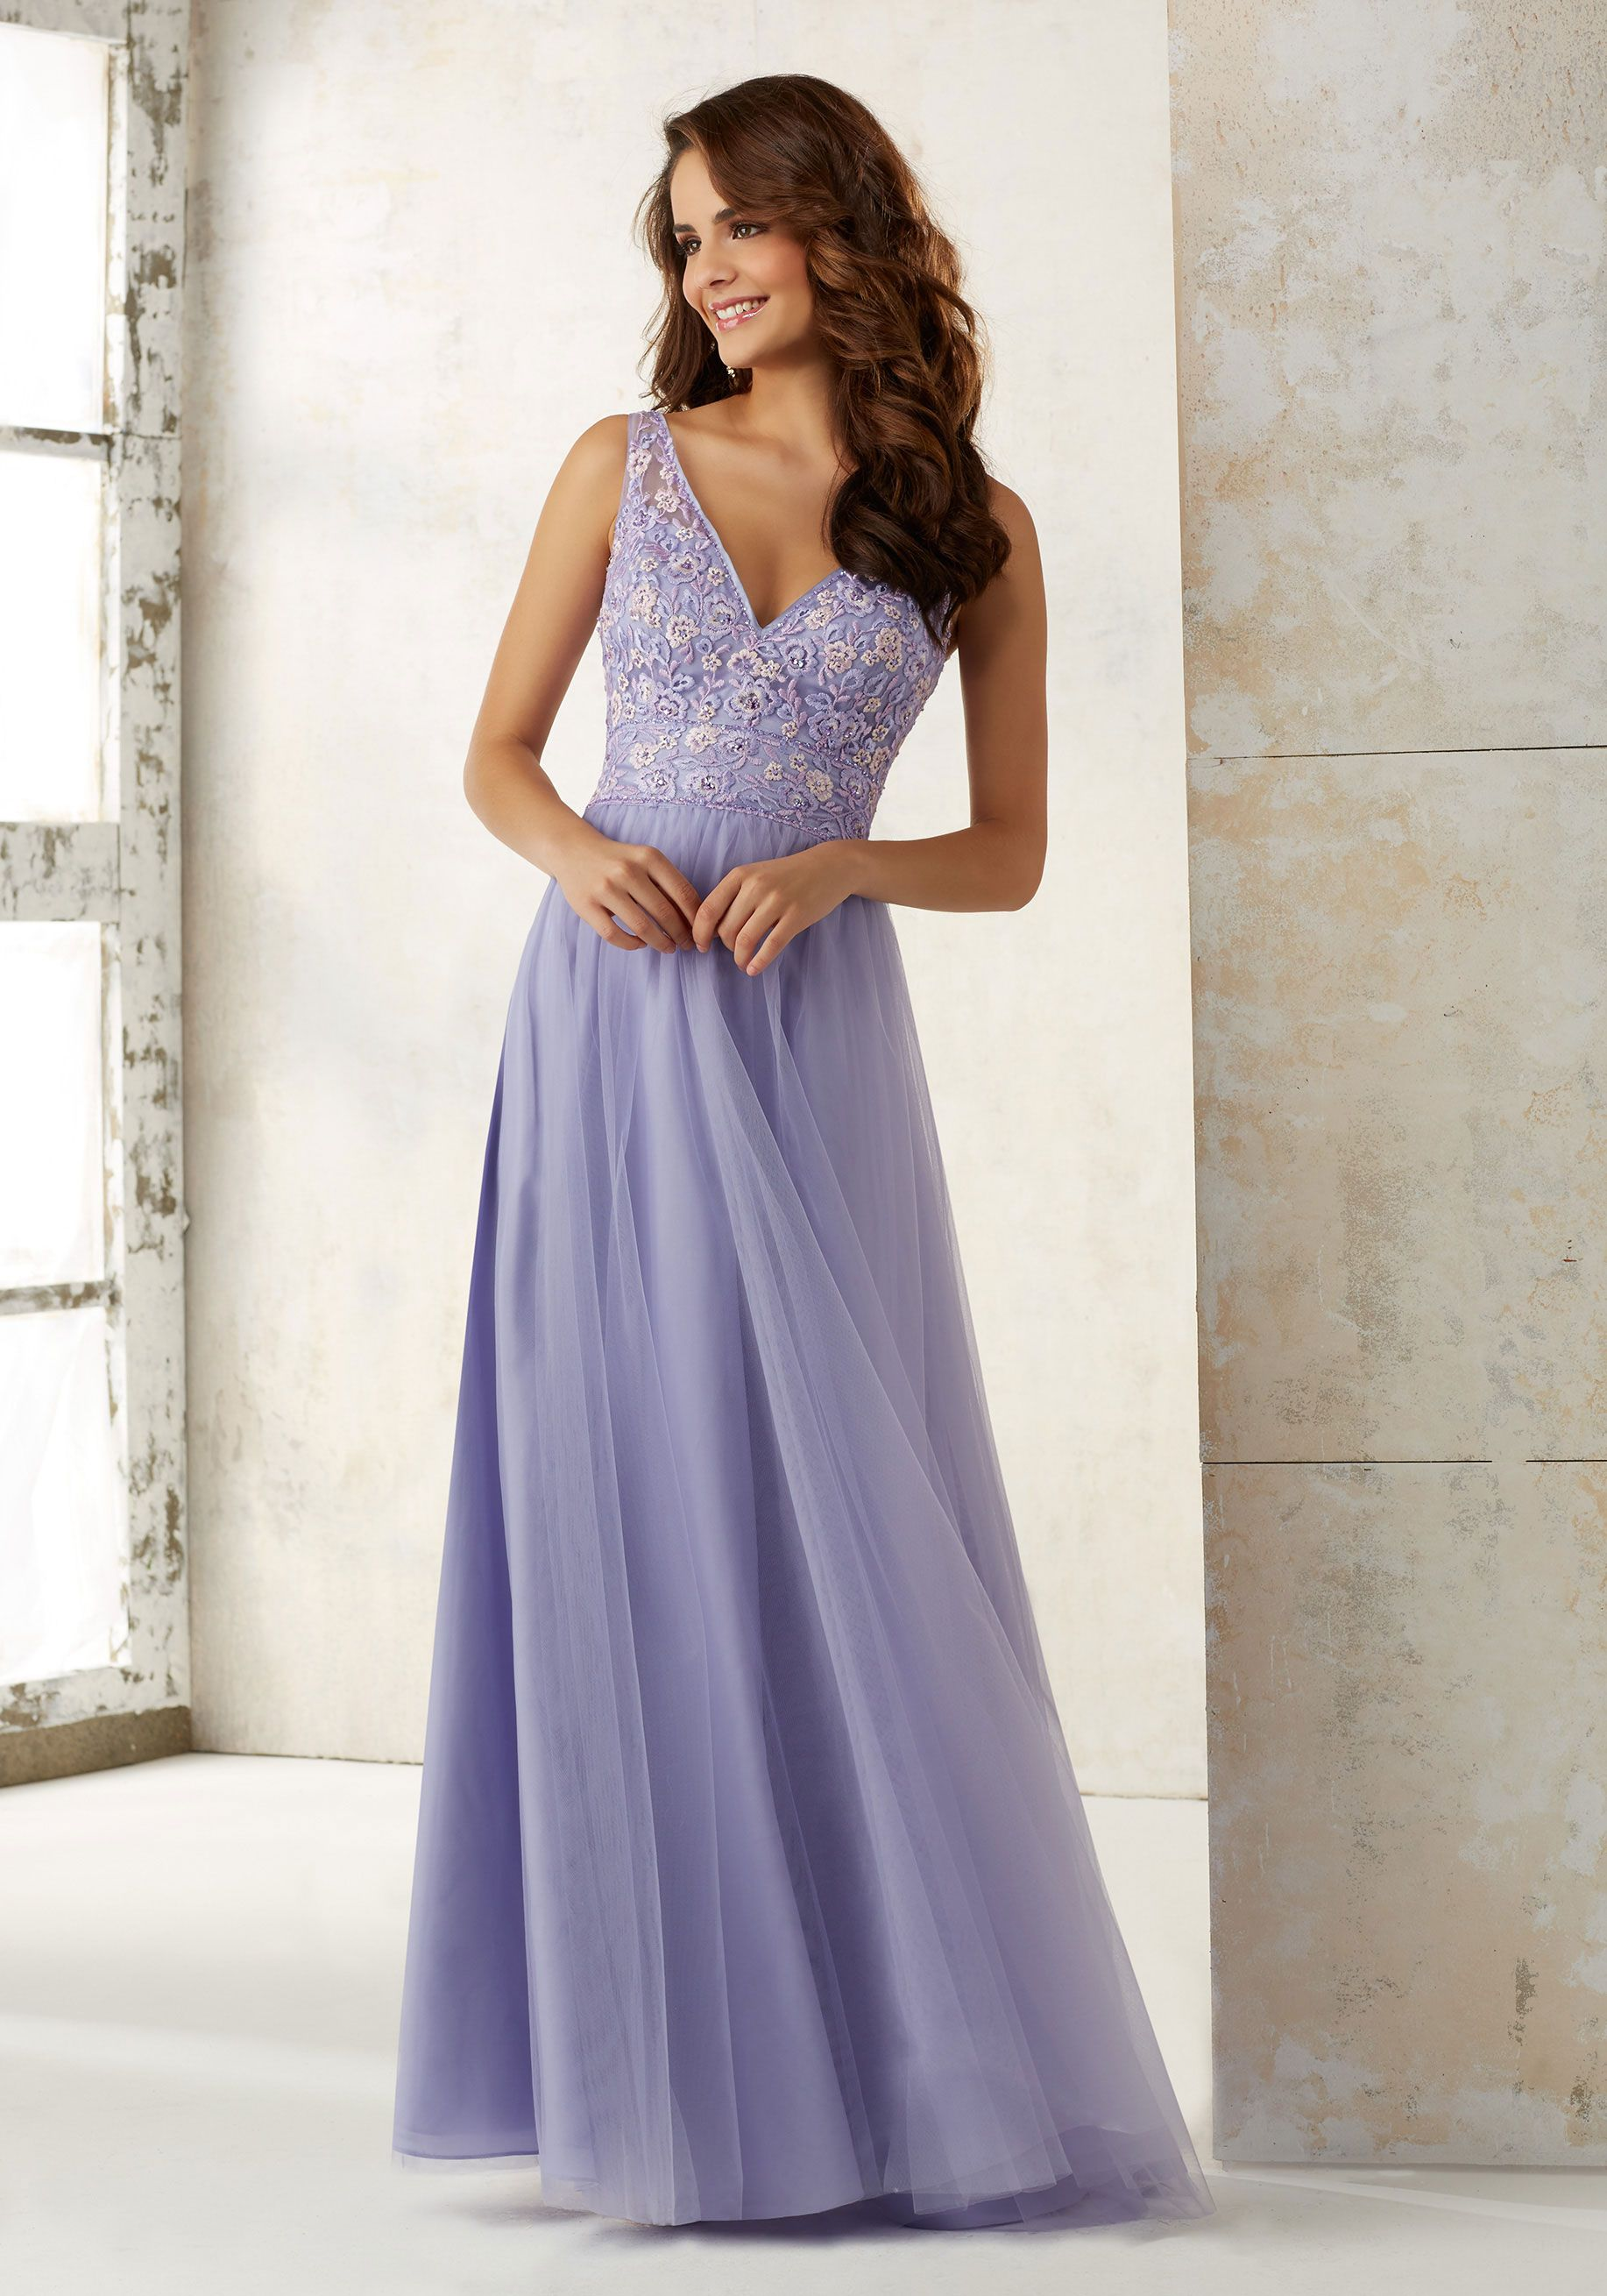 6cde94581ea Tulle Bridesmaids Dress with Embroidery and Beading on Bodice Style  21521